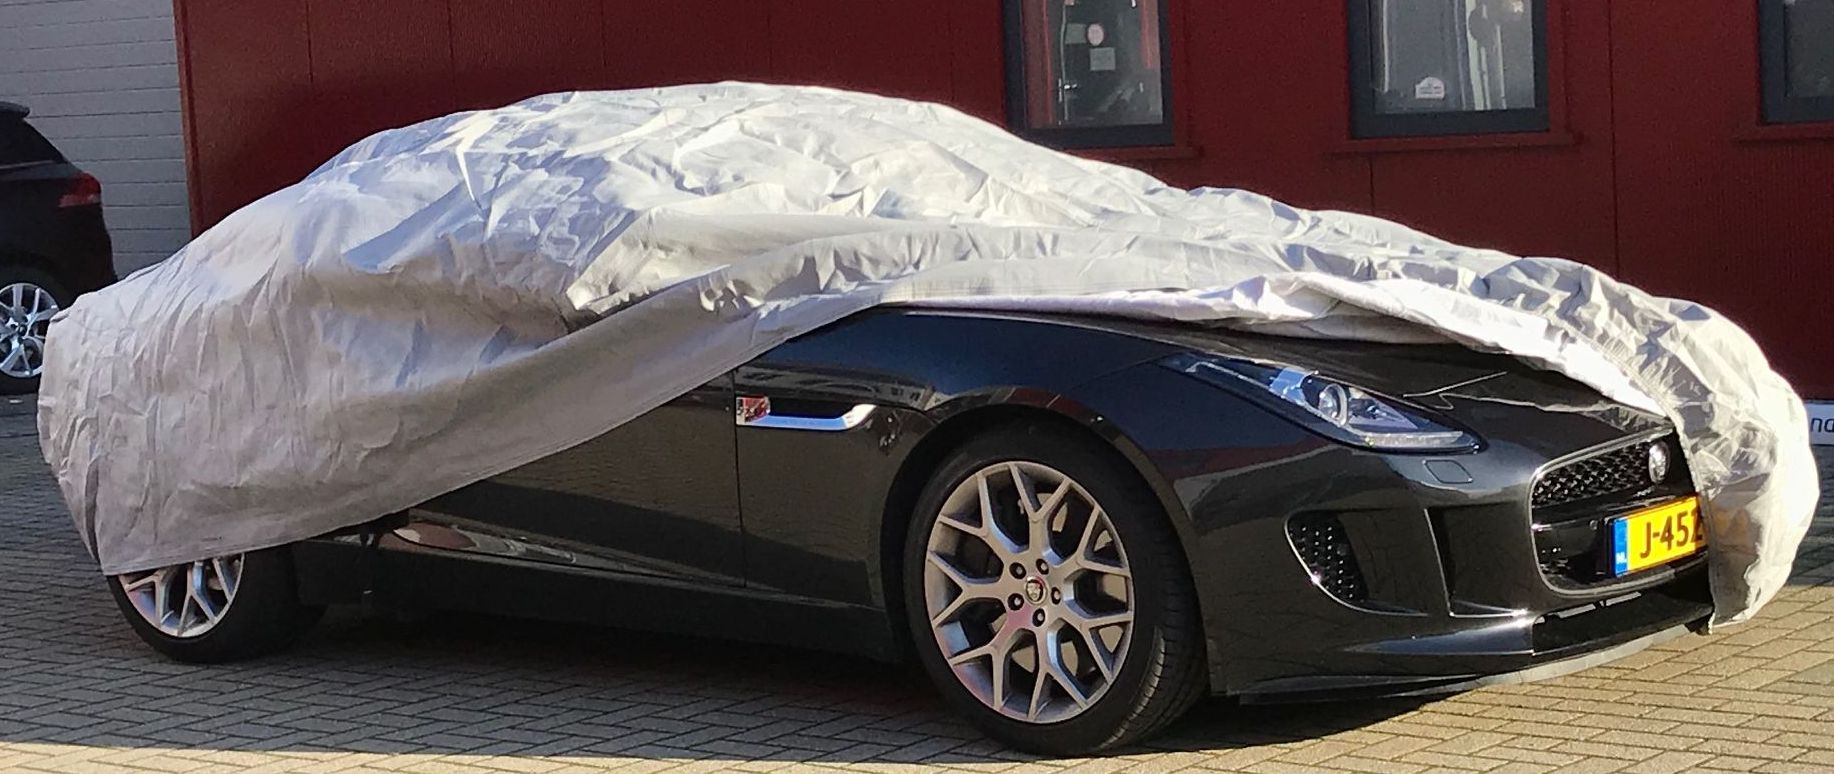 Carcovers for all cars